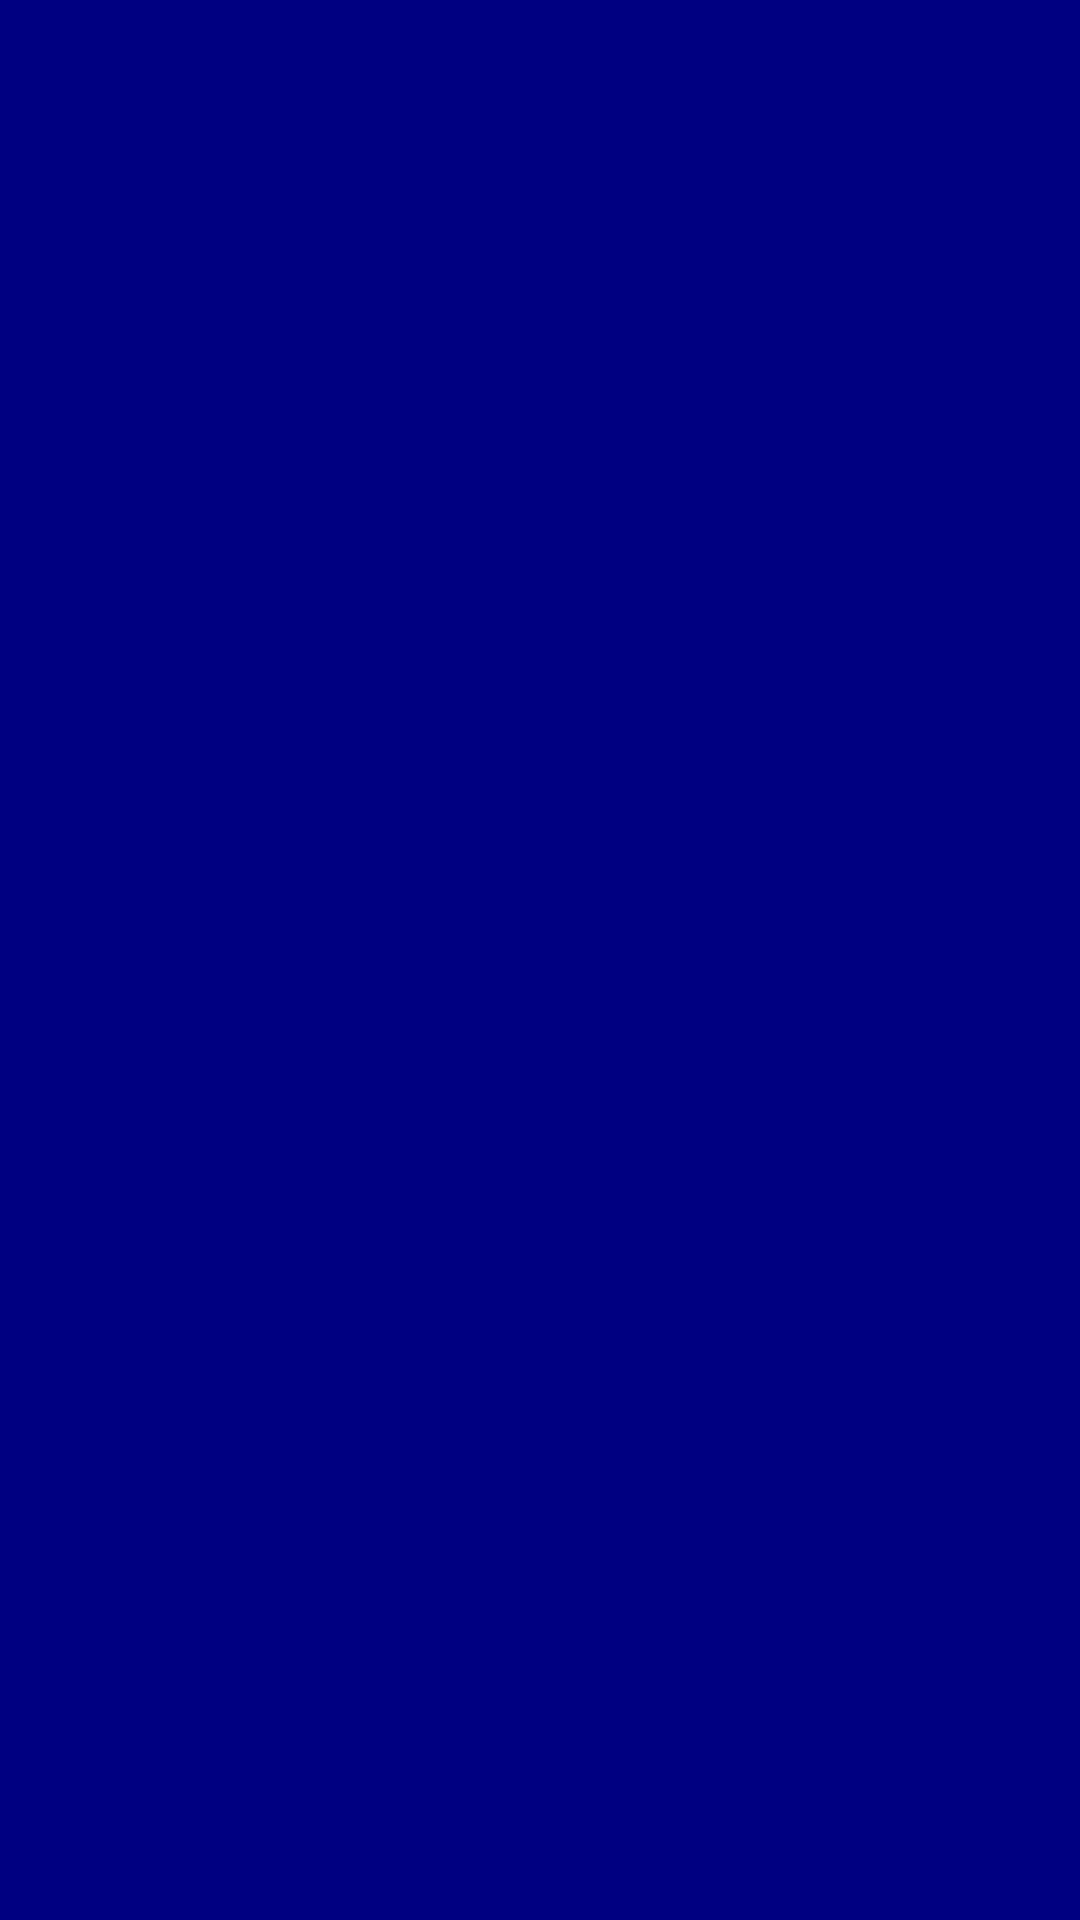 1080x1920 Navy Blue Solid Color Background